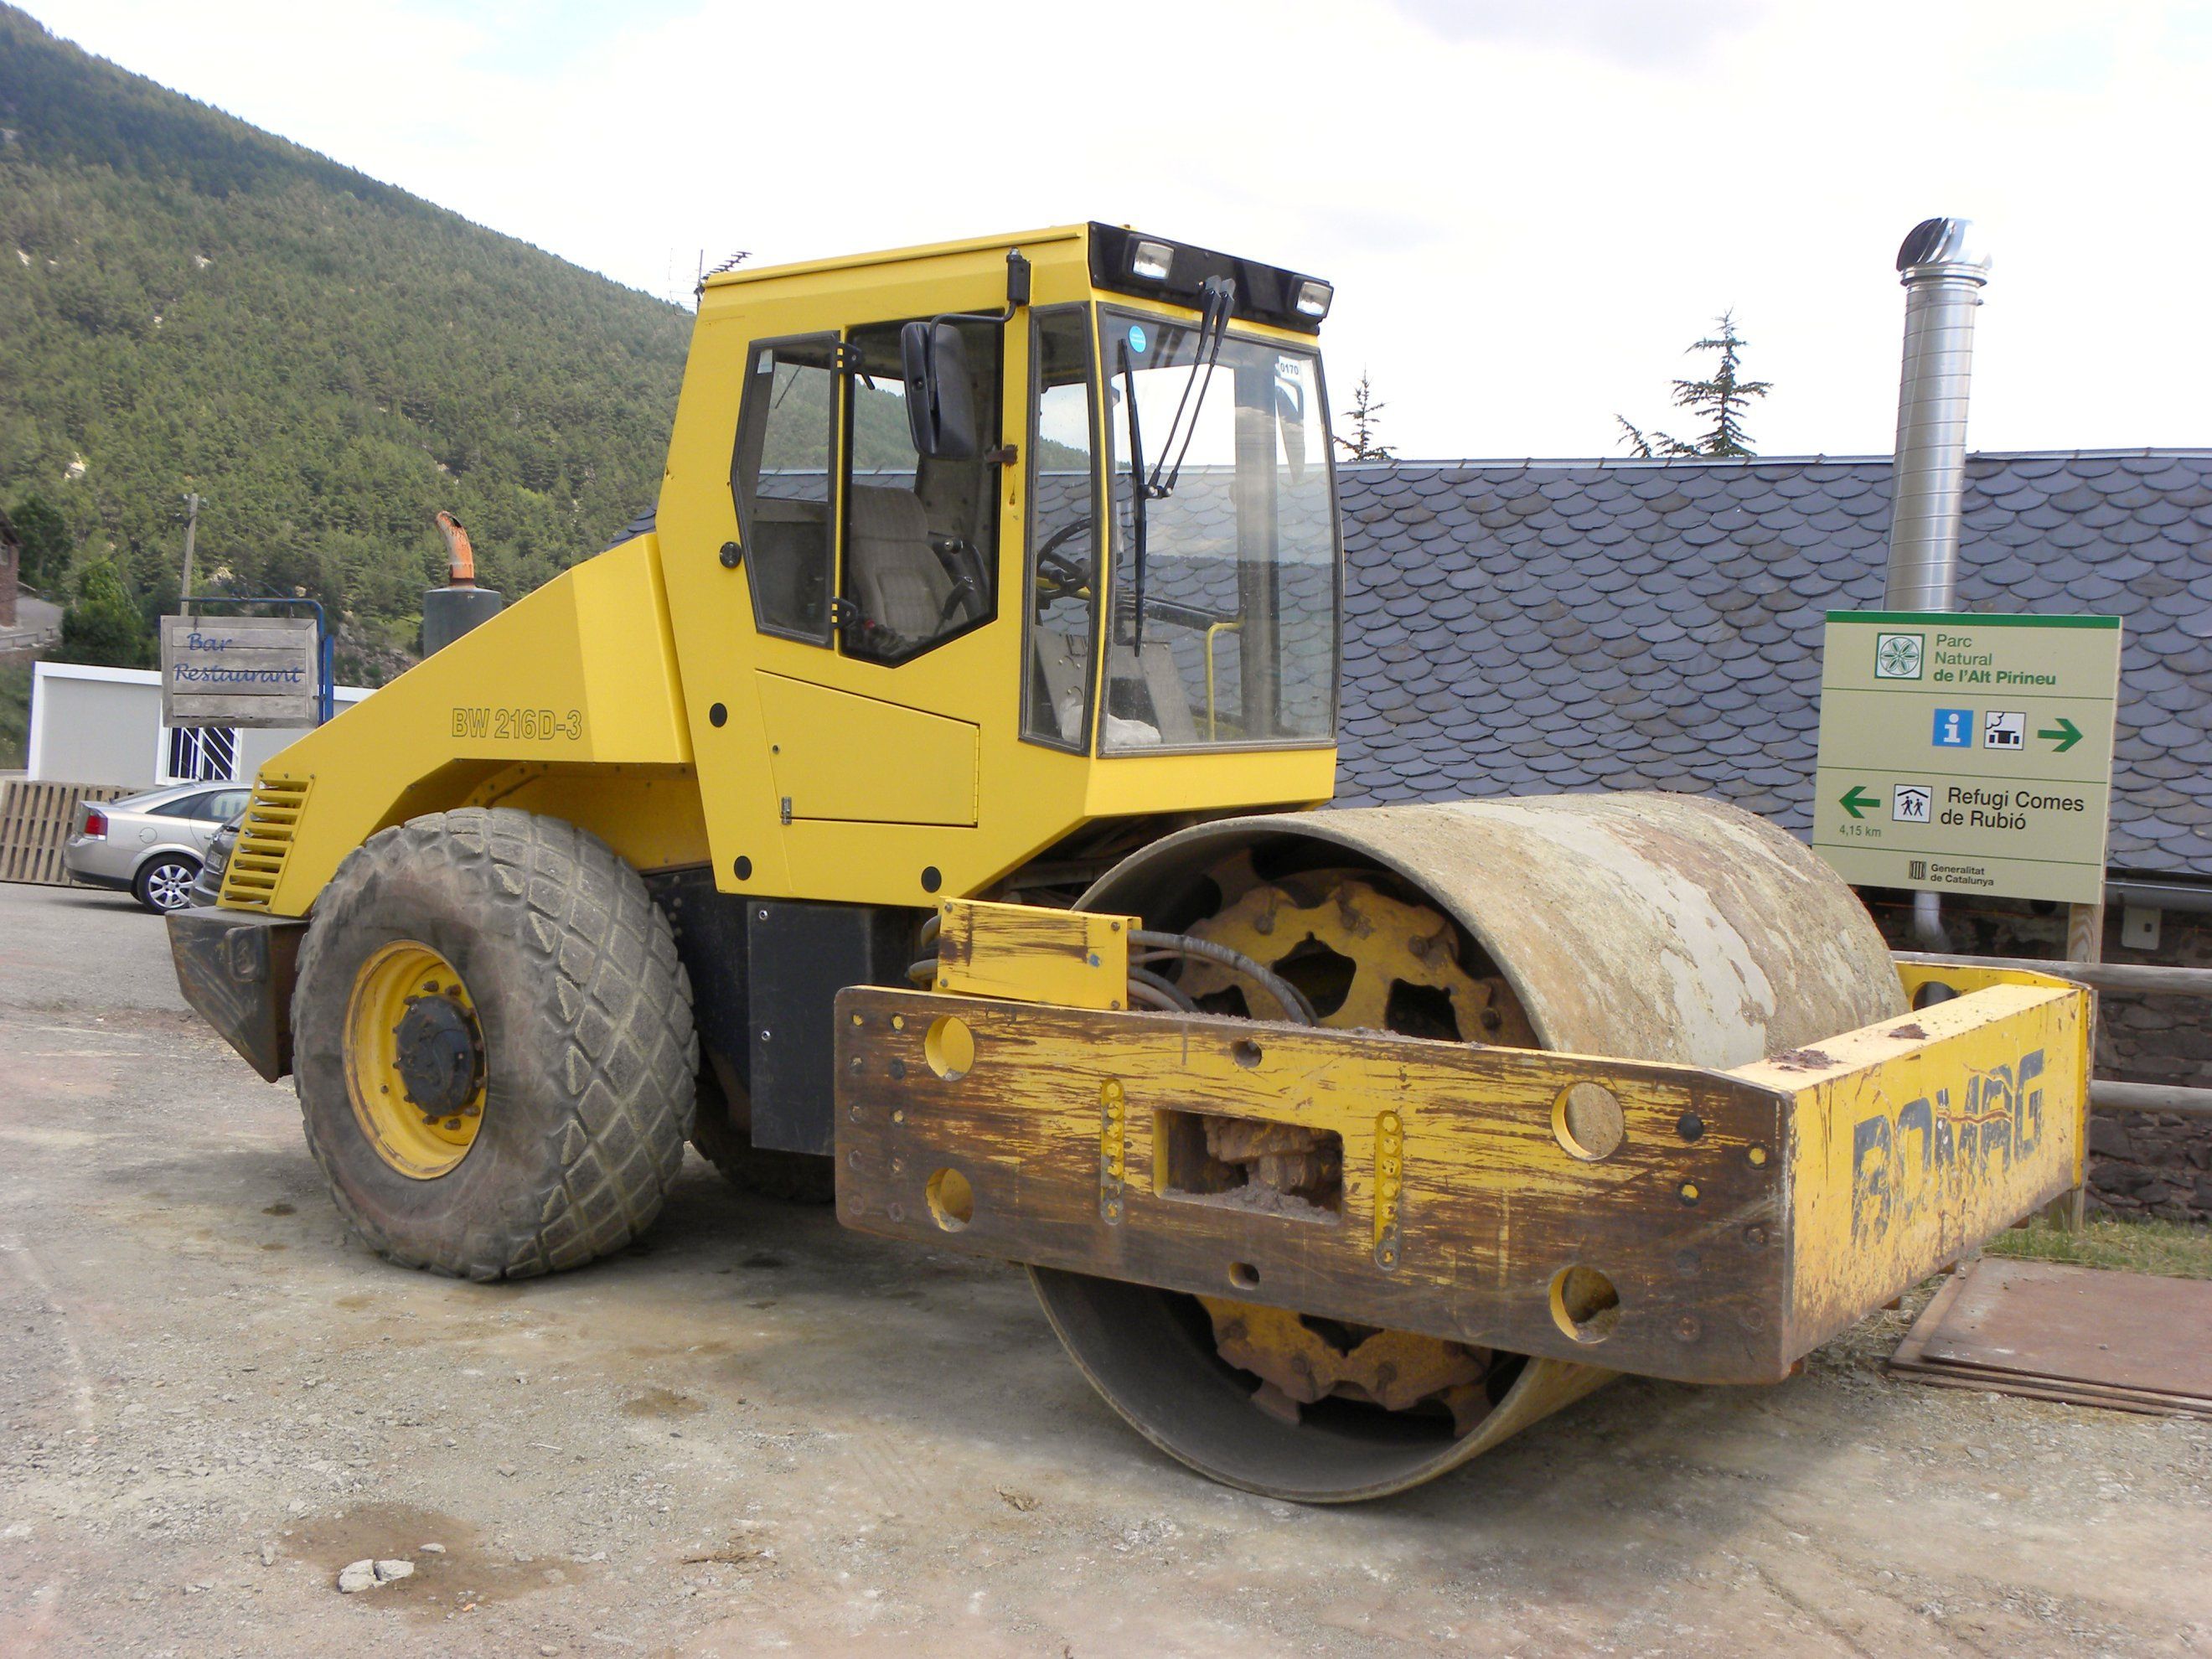 Bomag Bw 216 D 3 Bw 216 Dh 3 Bw 216 Pdh 3 Bw 129 Dh 3 Bw 219 Pdh 3 Bw 225 D 3 Bw 225 Pd 3 Single Drum Roller Workshop Service